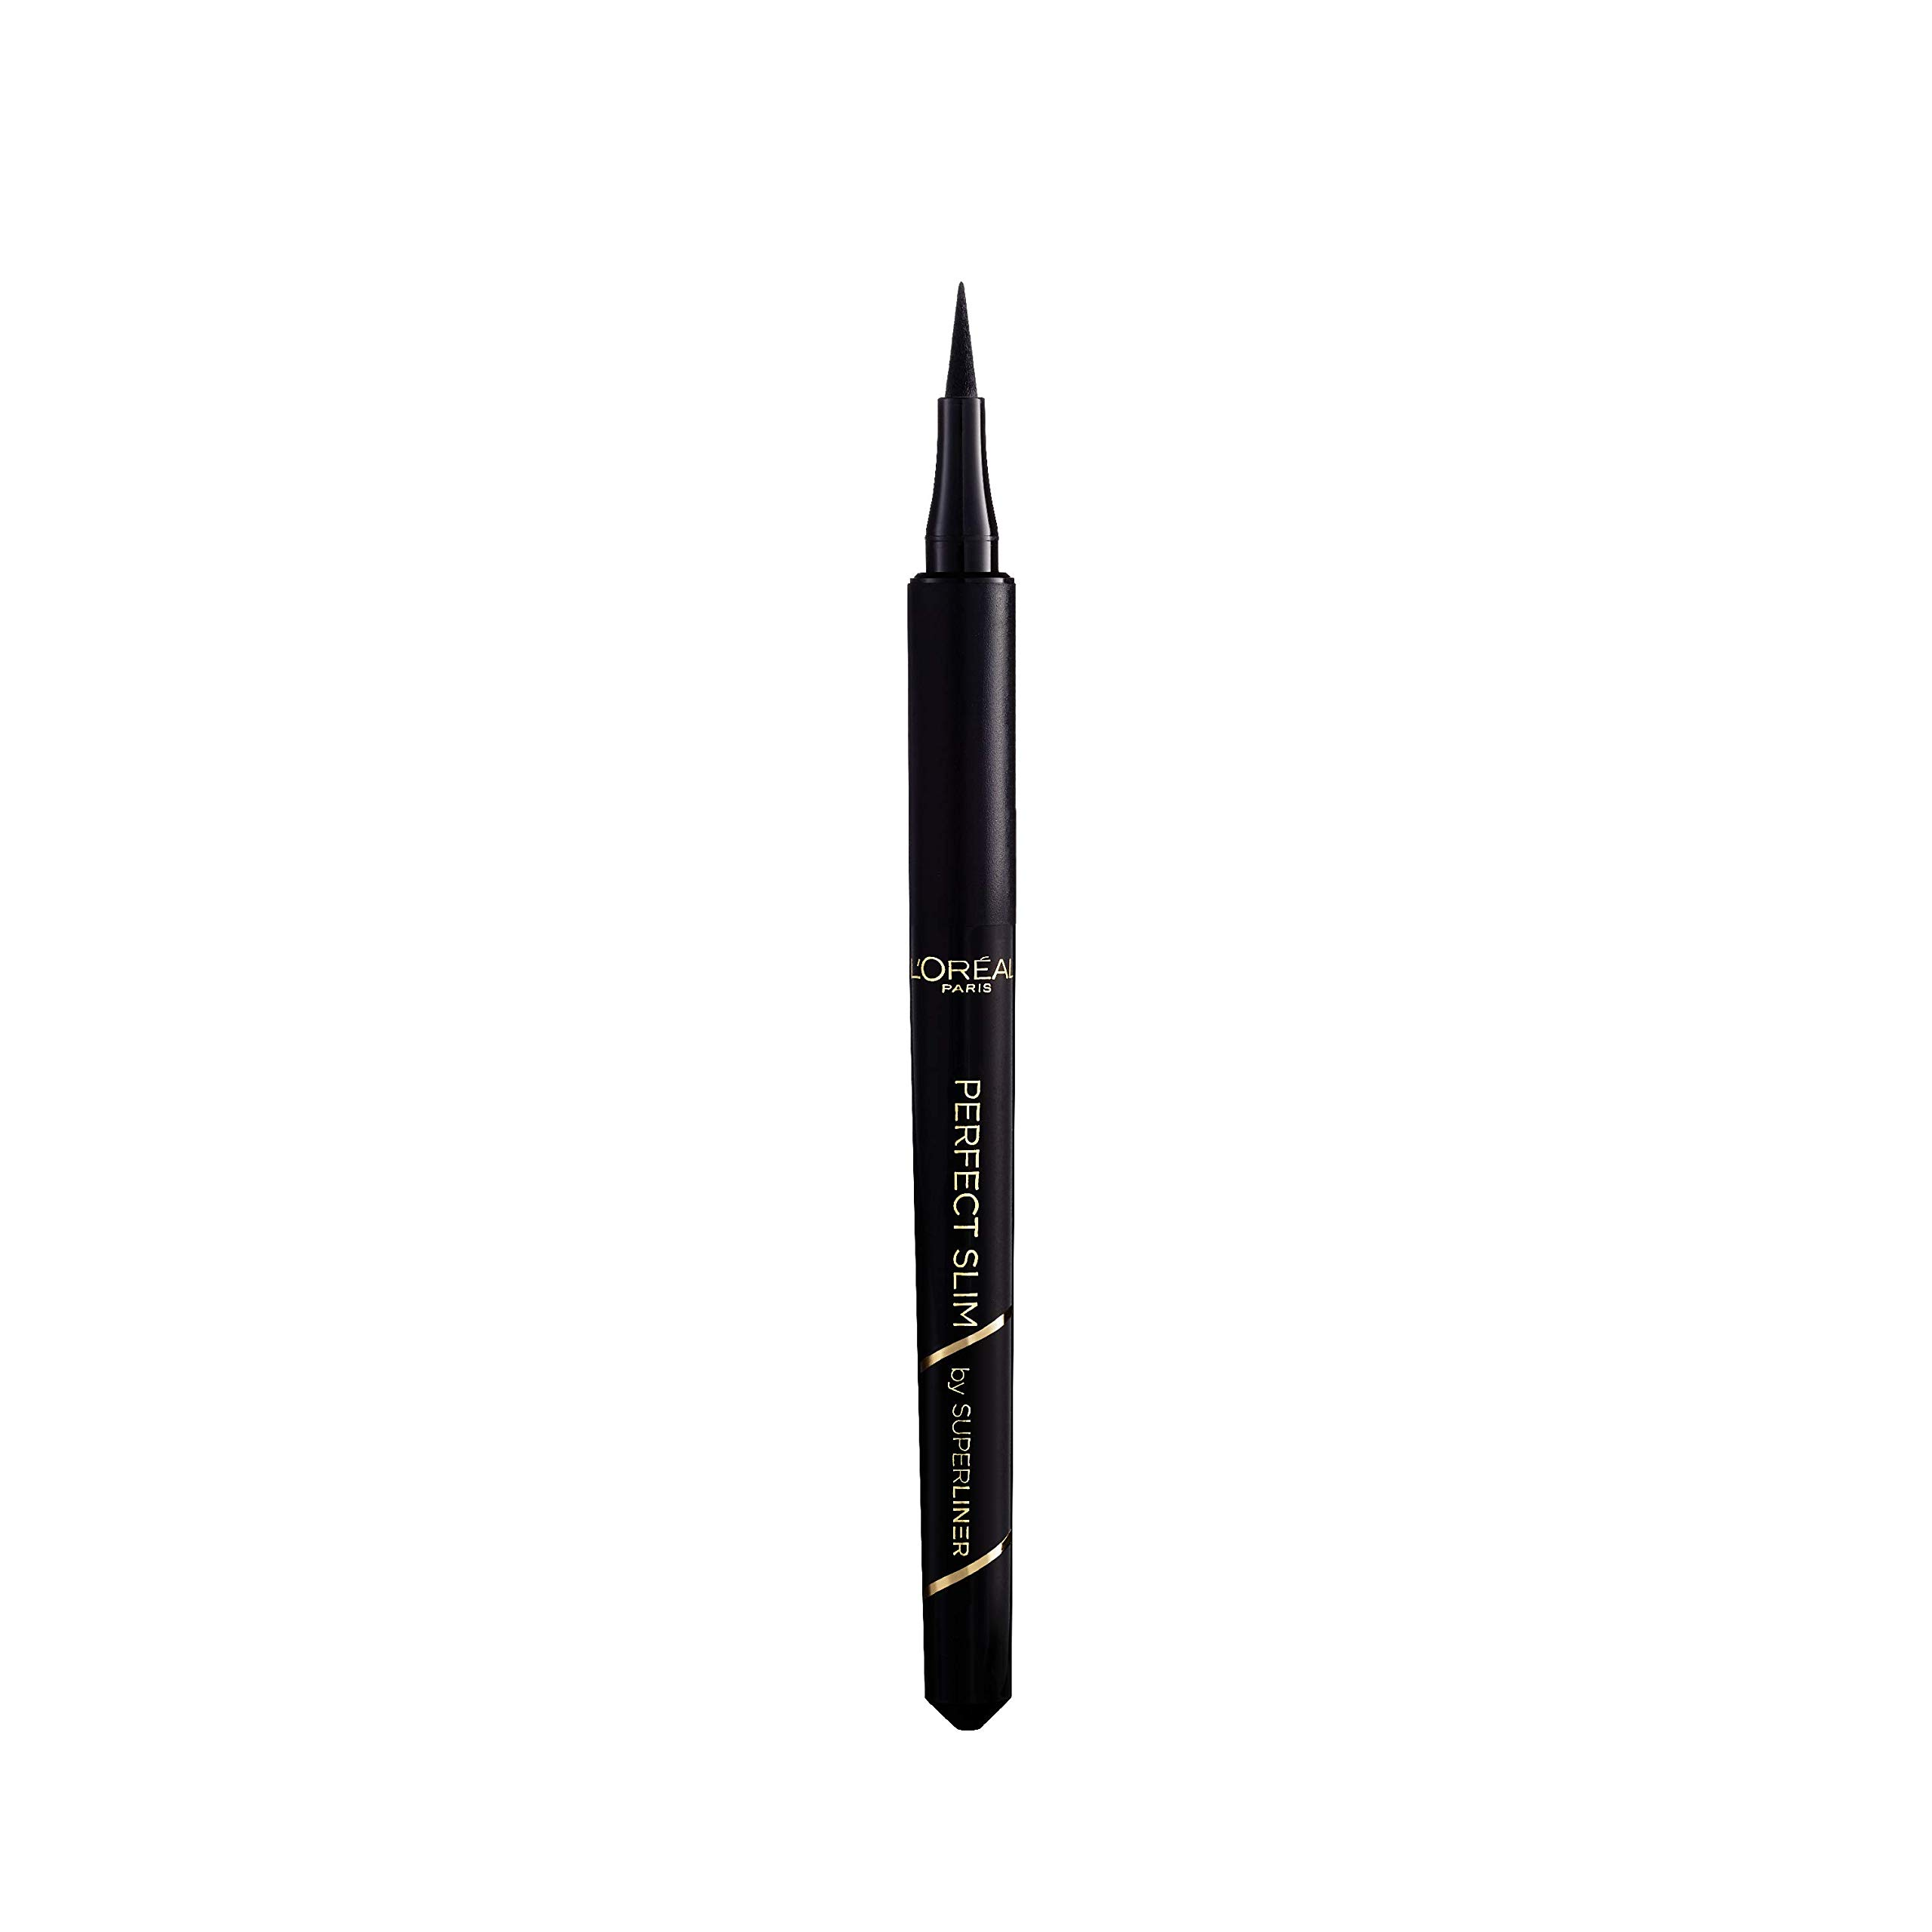 L'Oreal Paris Superliner Perfect Slim liquid eyeliner, long-lasting, smudge-proof, 01 Intense Black